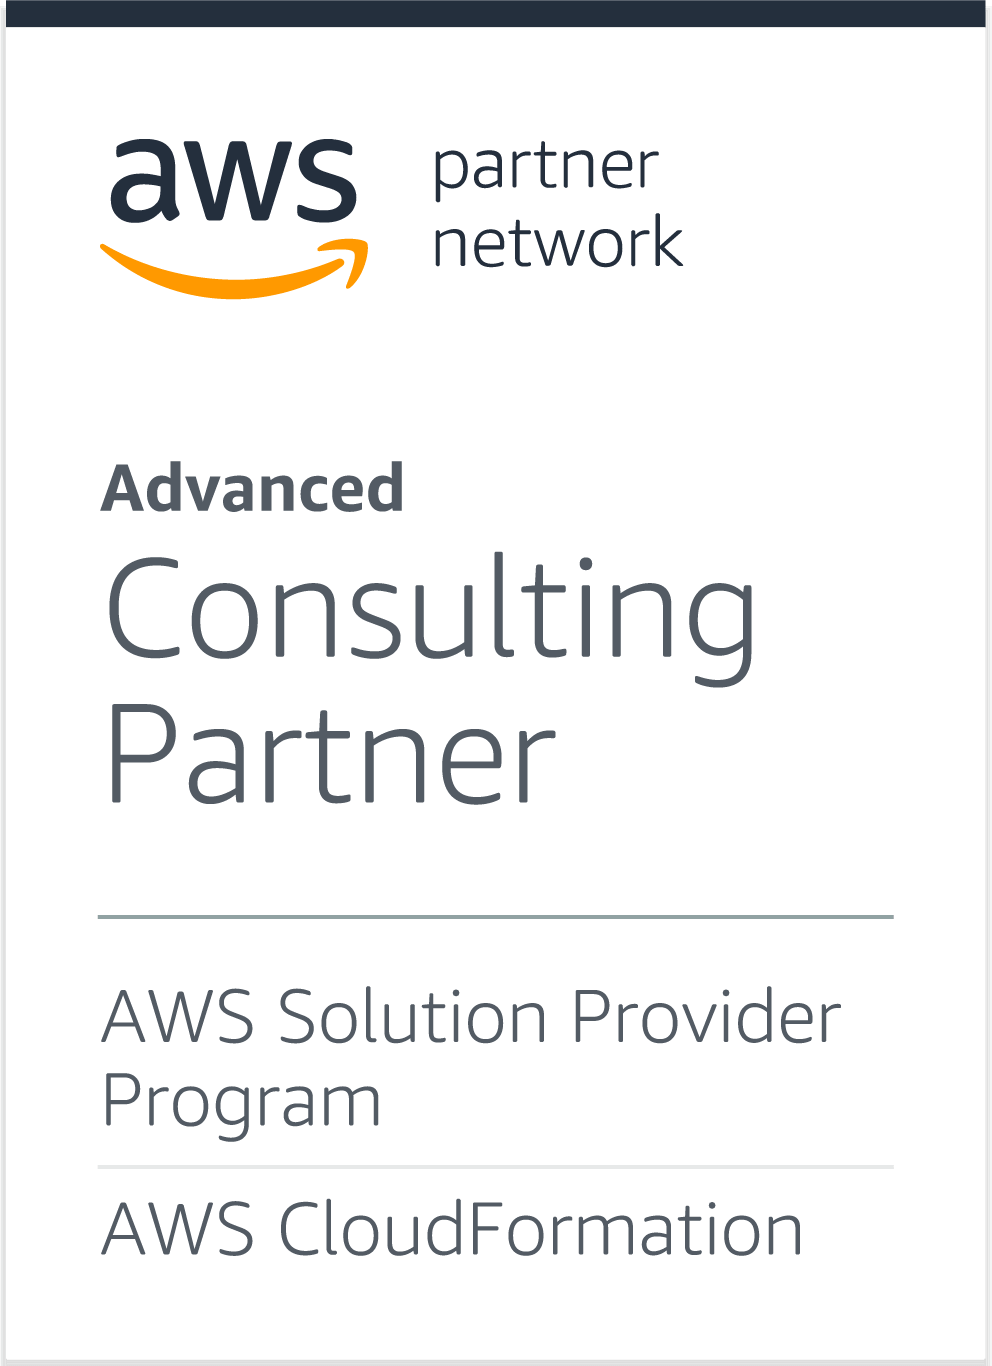 AWS Partner Network: Advanced Consulting Partner - AWS Solution Provider Program, AWS CloudFormation